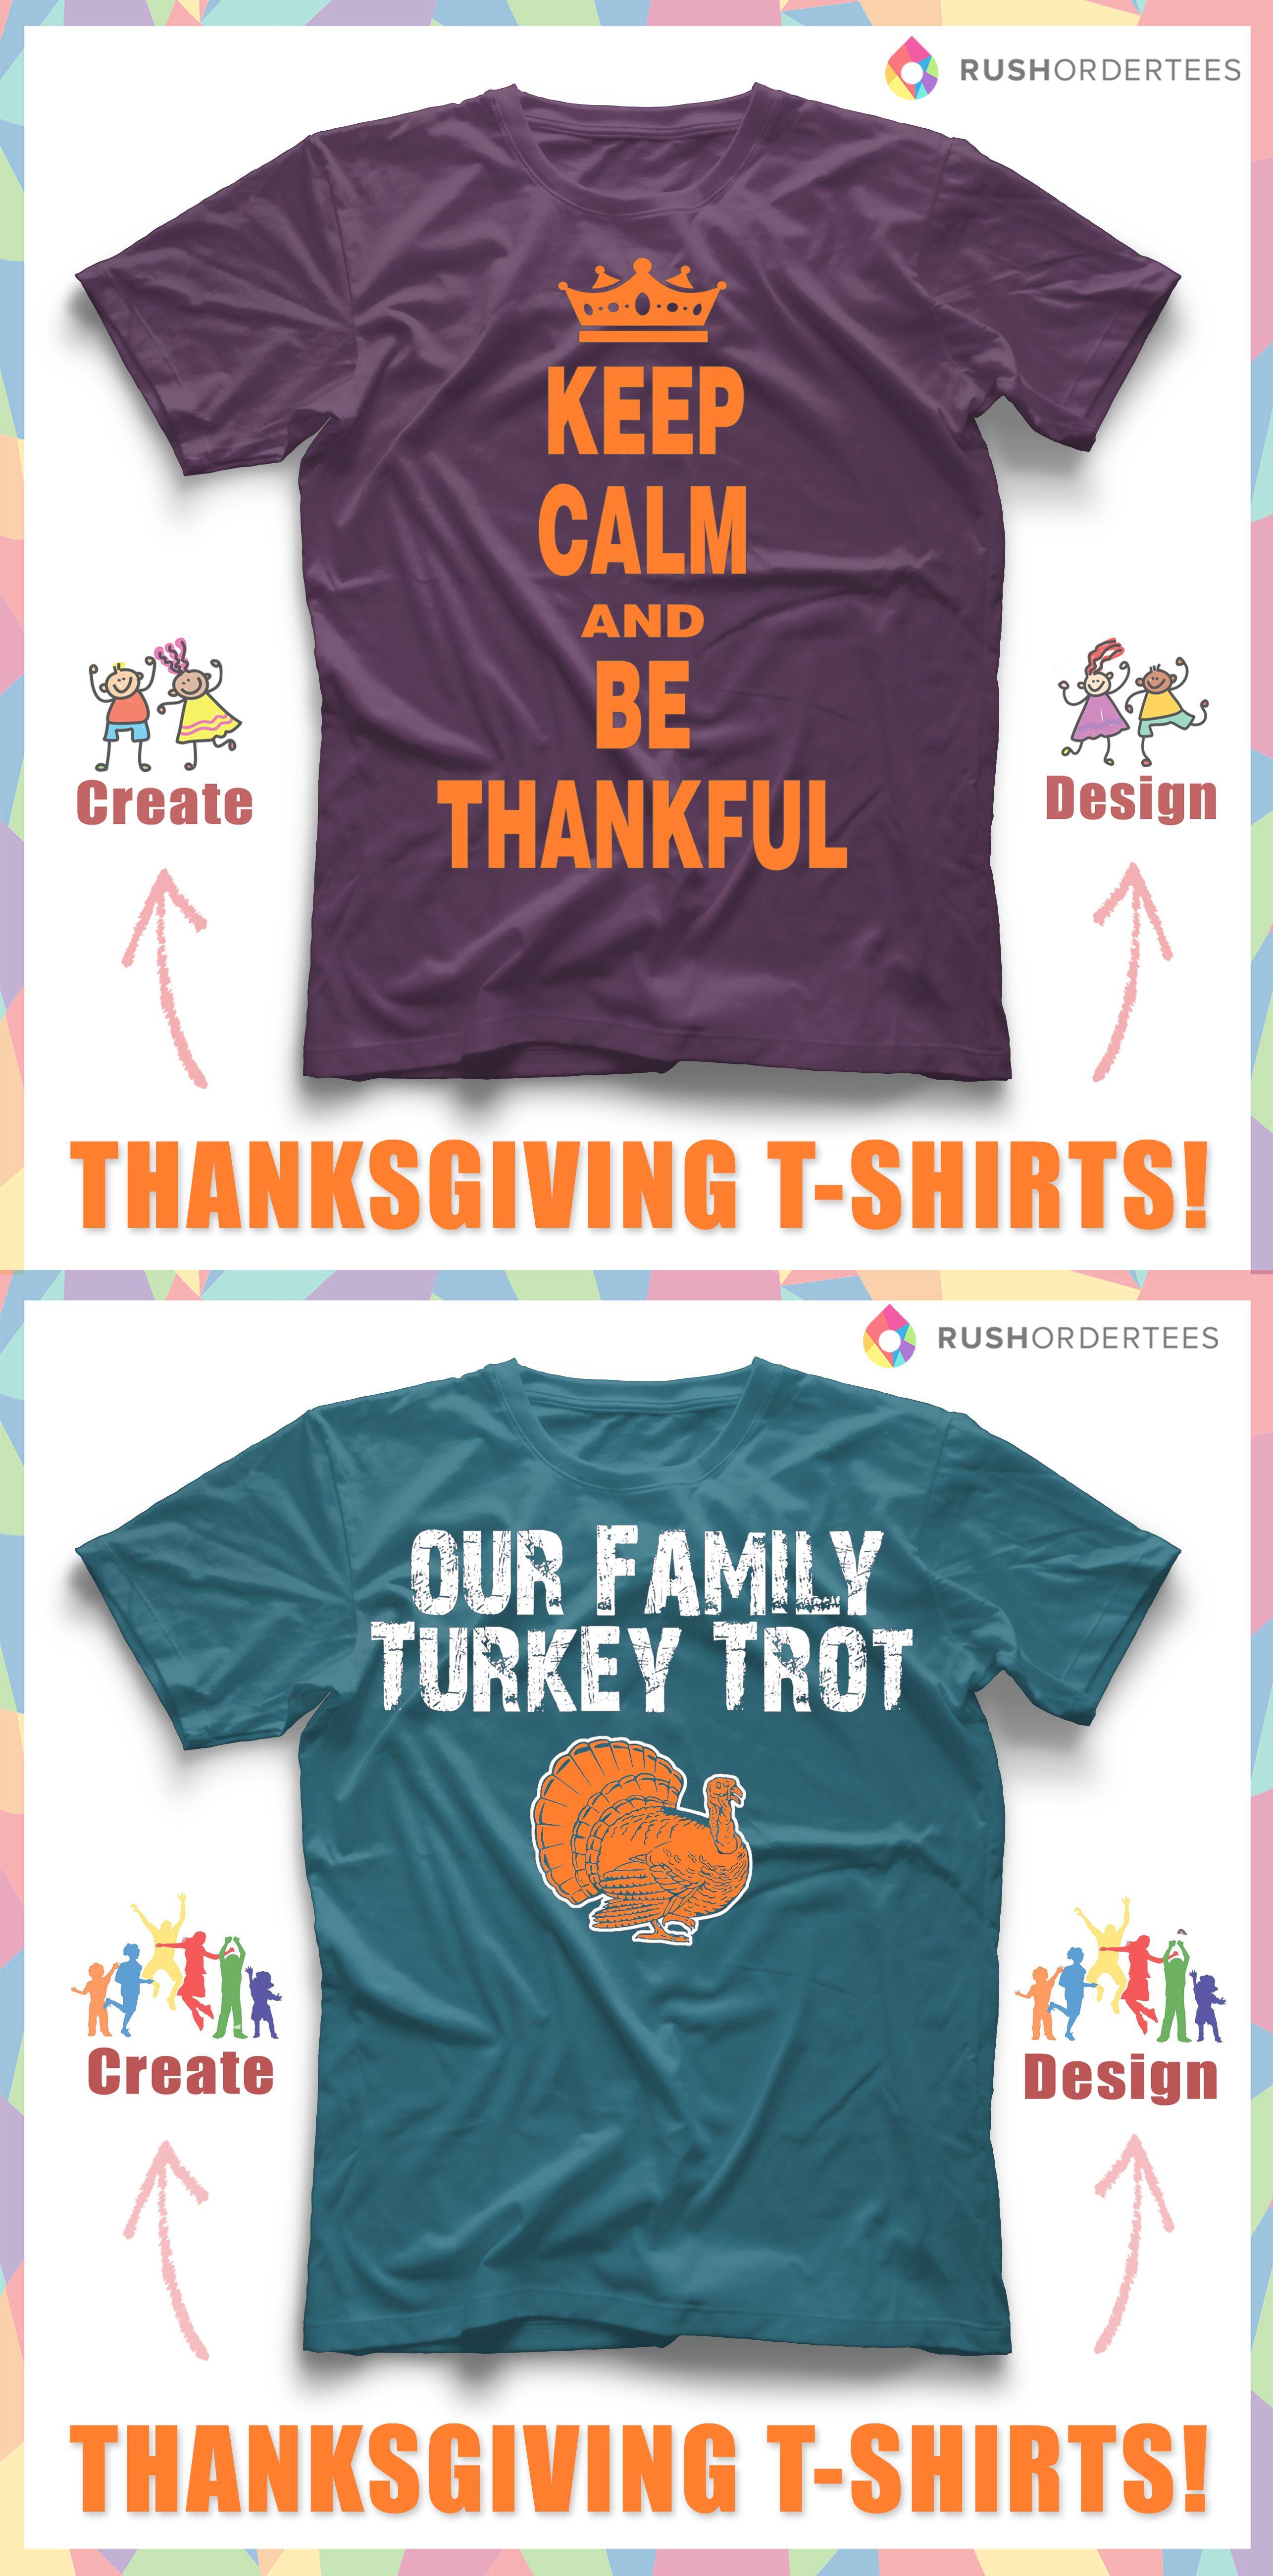 fdb5919a Keep Calm and Be Thankful! Our Family Turkey Trot T-Shirt. Create and design  custom t-shirts for your Thanksgiving Day! www.rushordertees.com